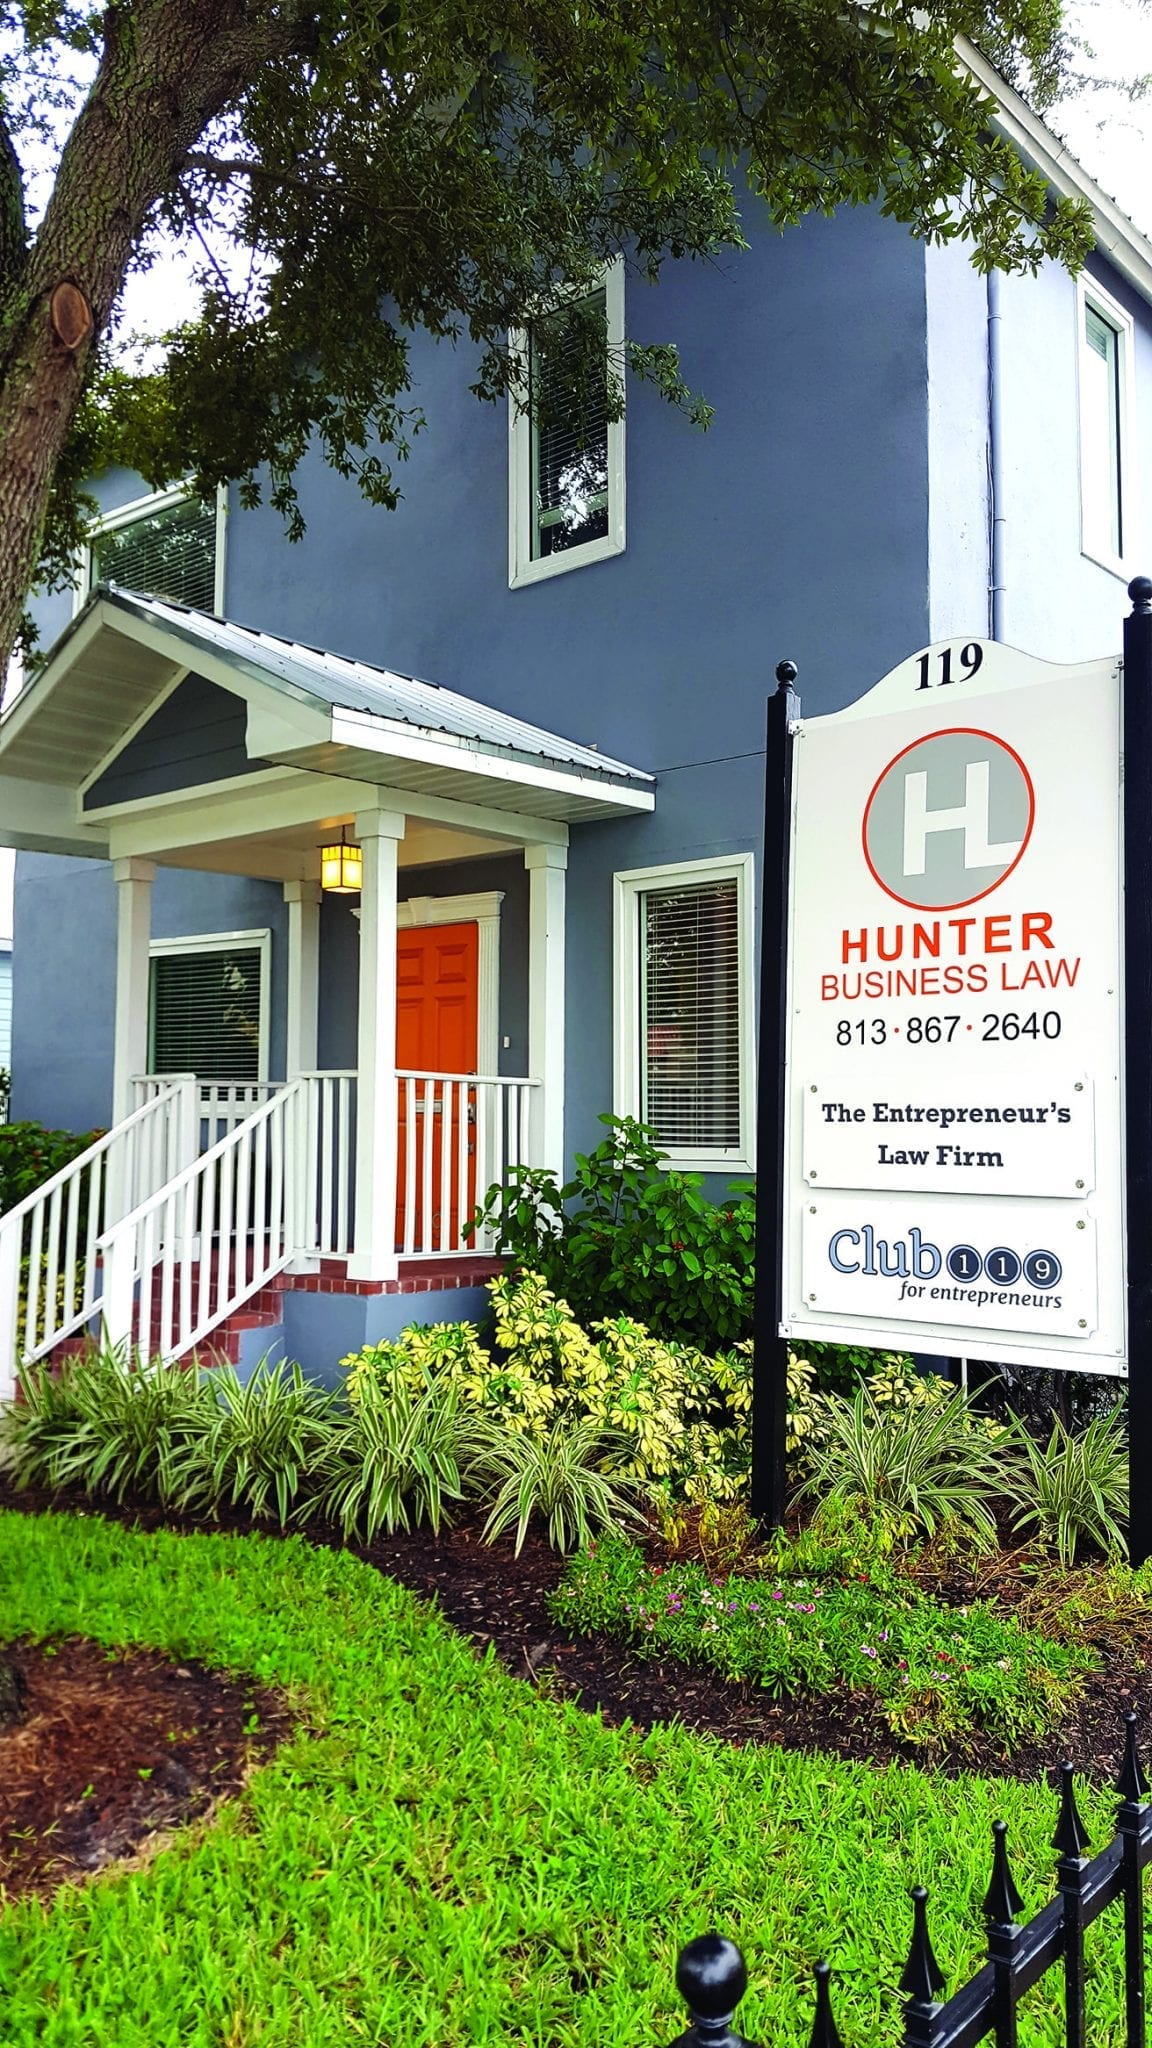 Hunter Business Law newest building